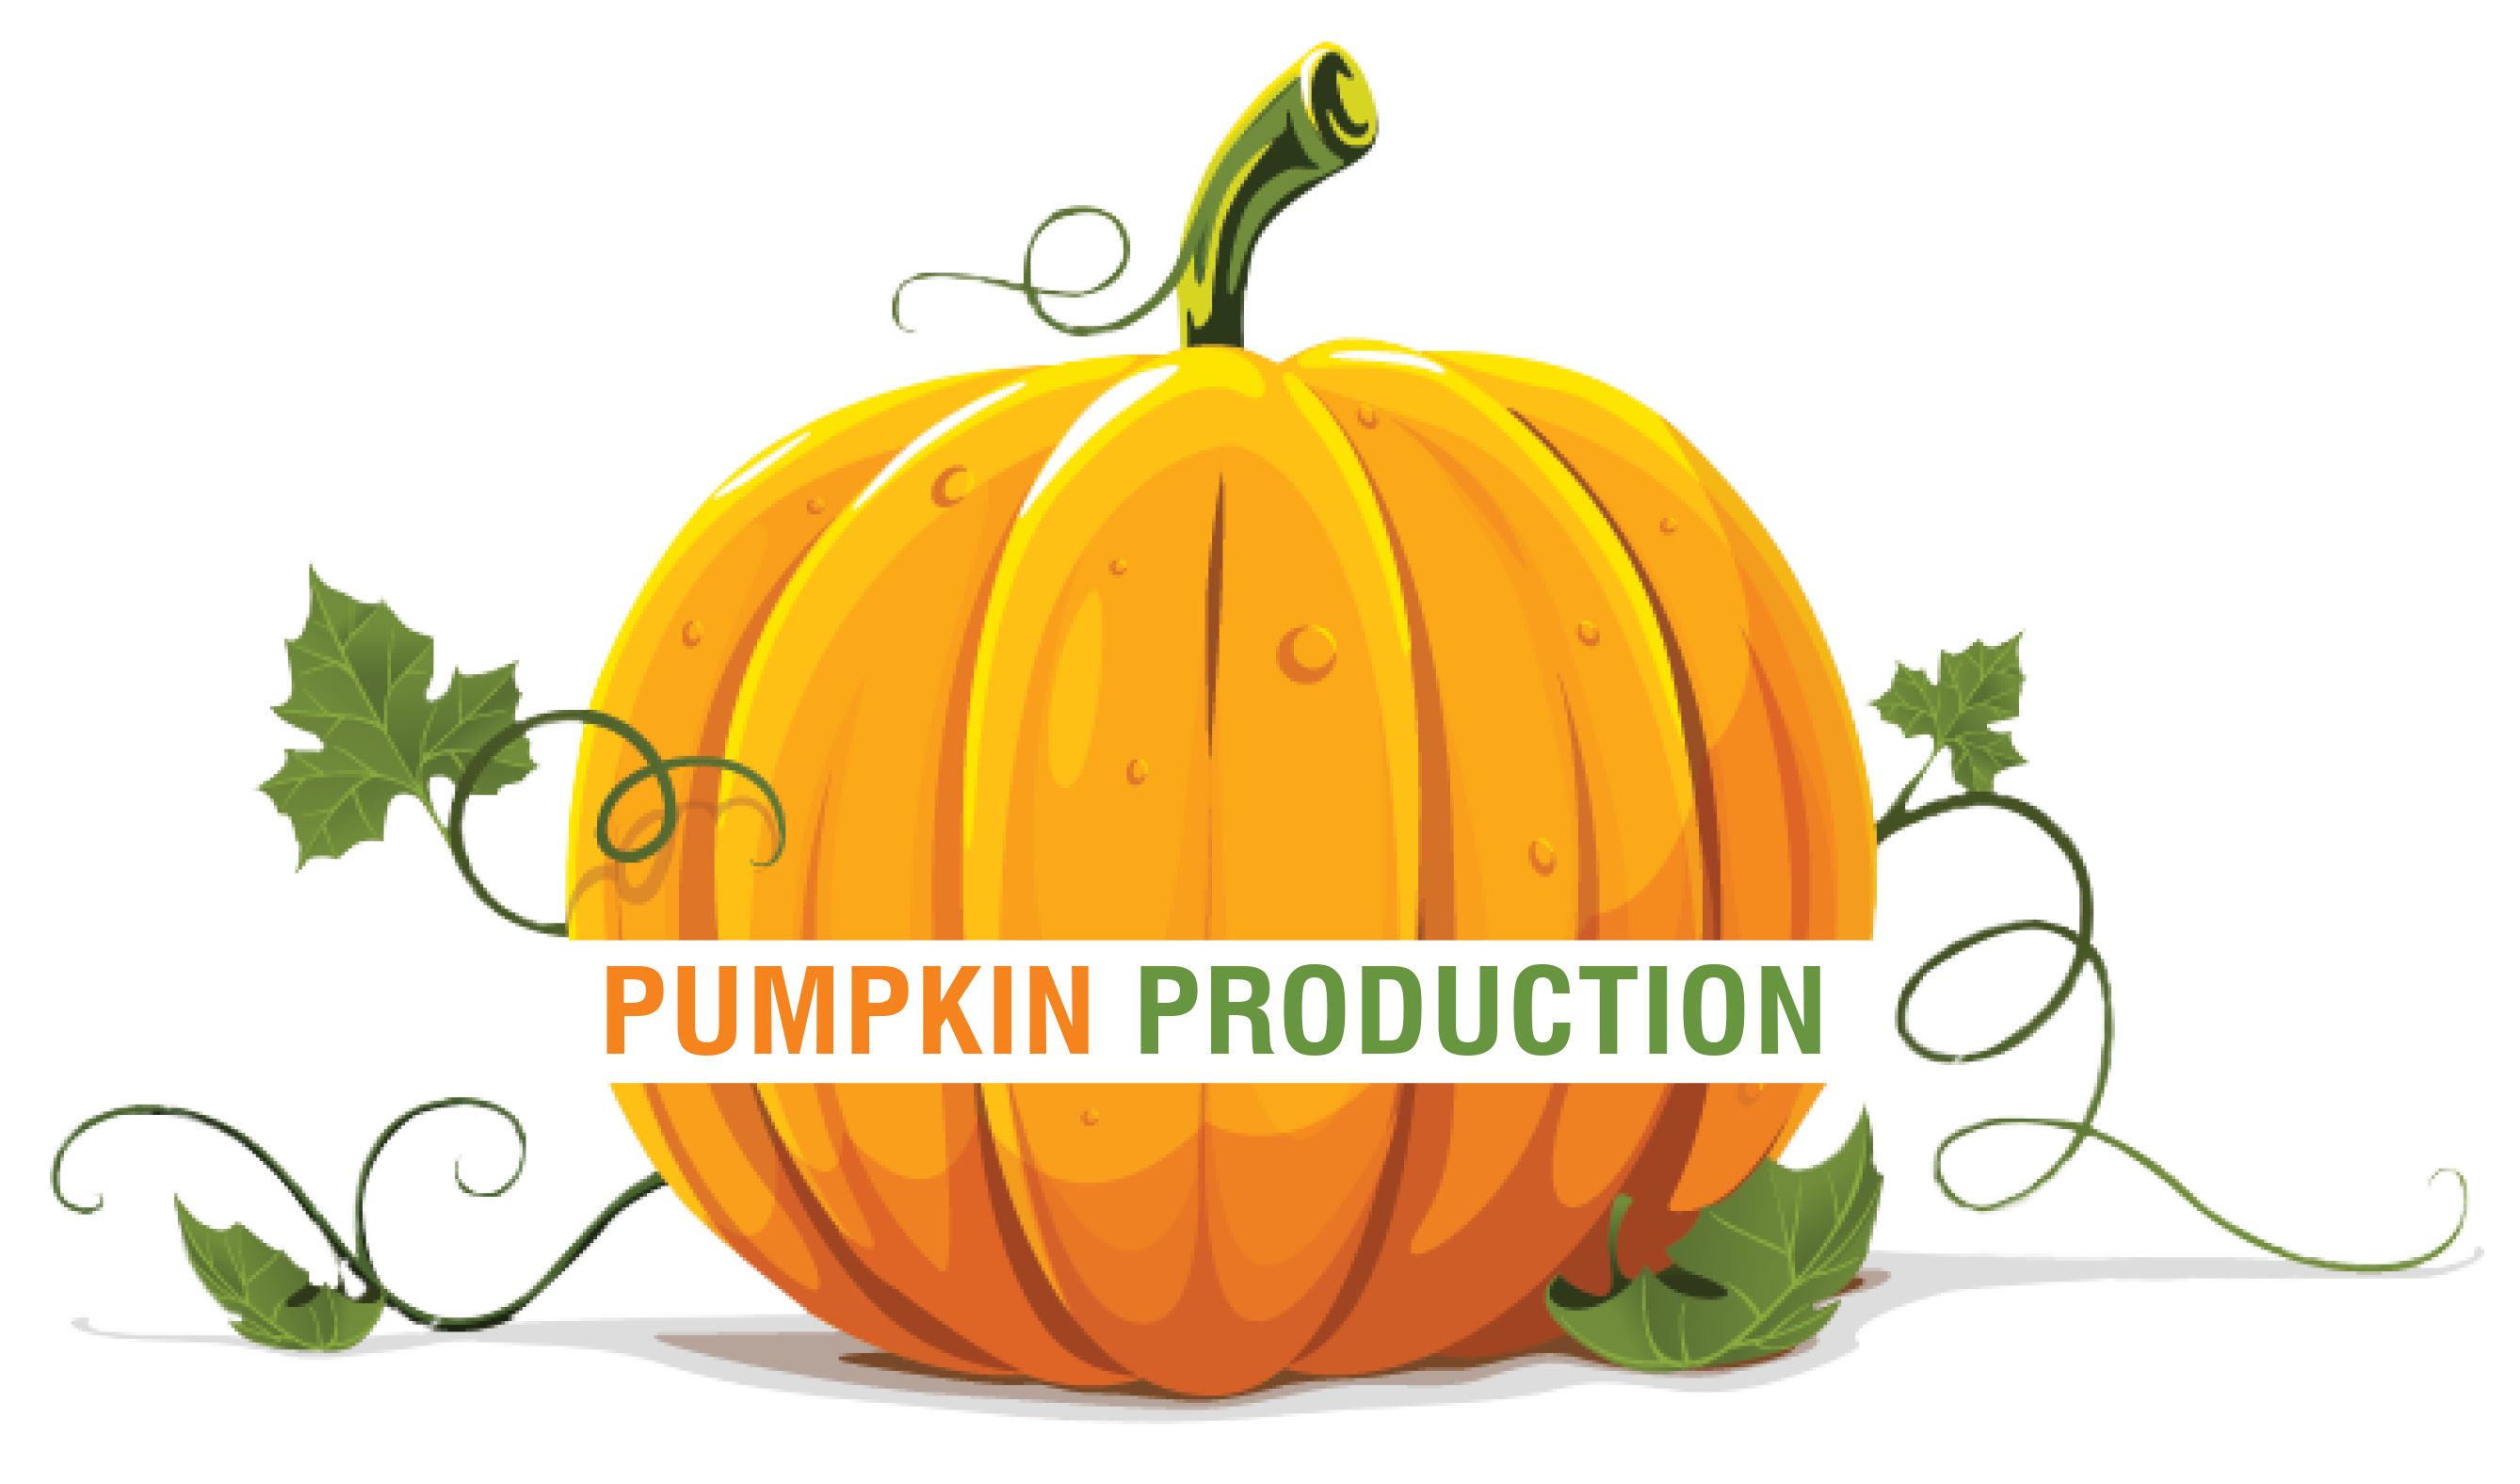 Realistic pumpkin clipart vector transparent library Pumpkin Production vector transparent library